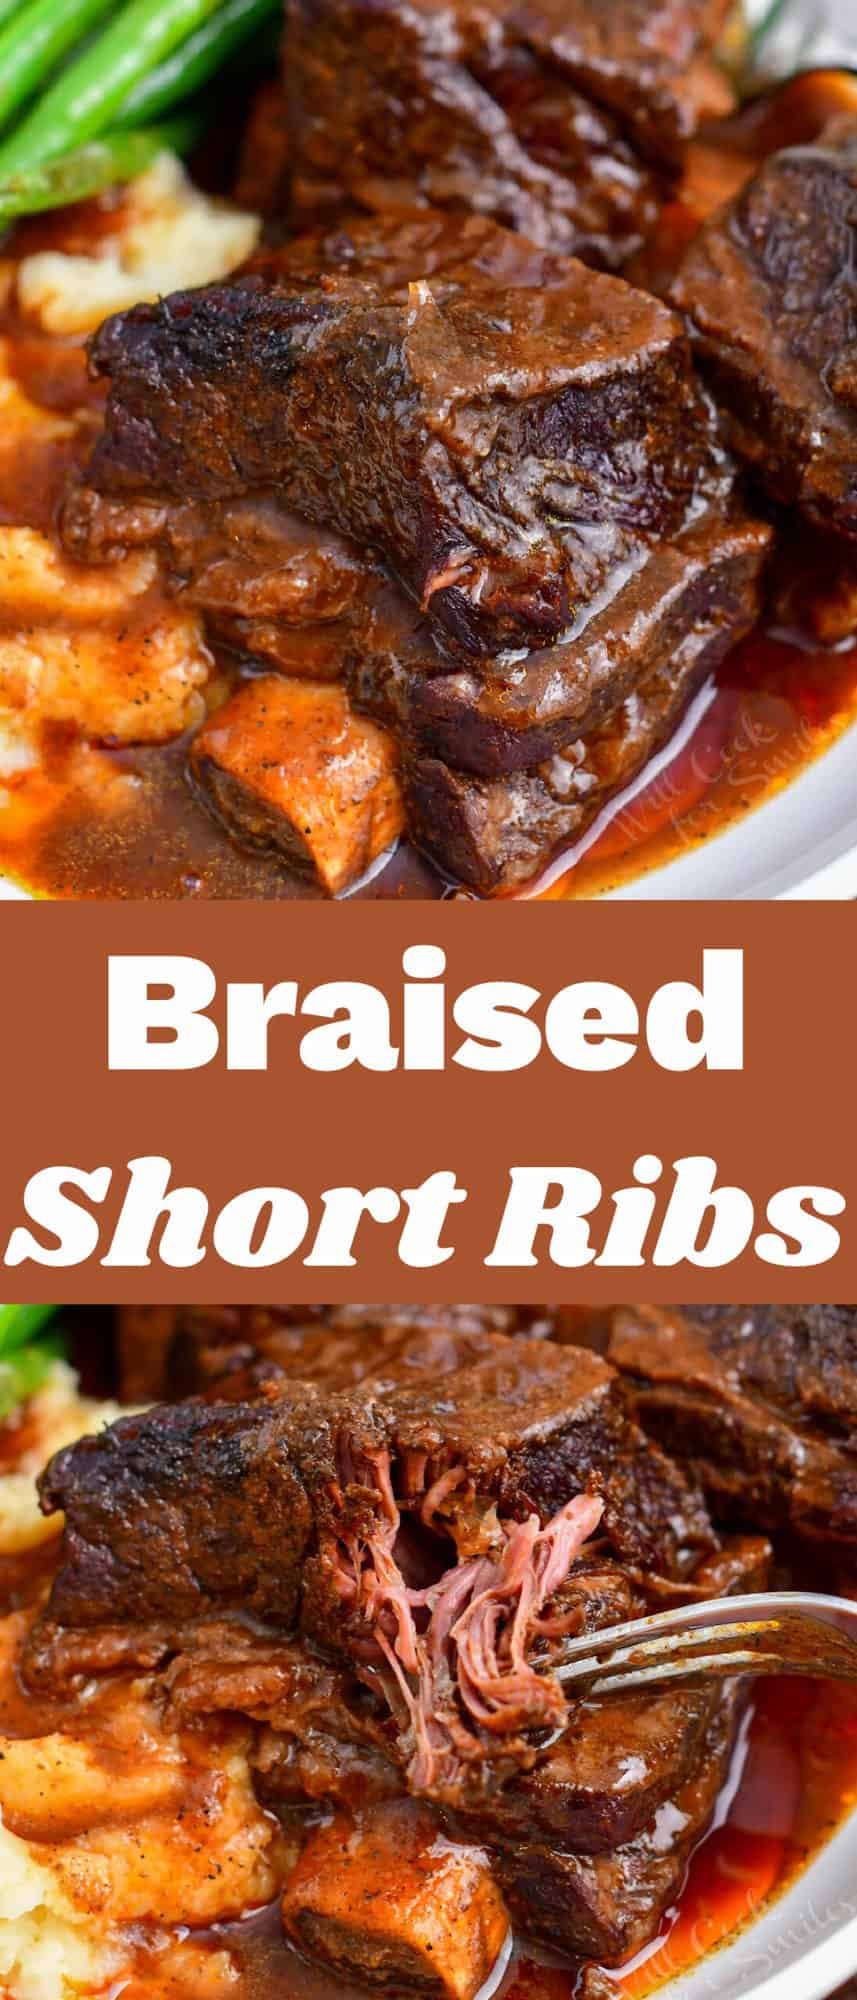 titled Pinterest image (and shown): Braised Short Ribs